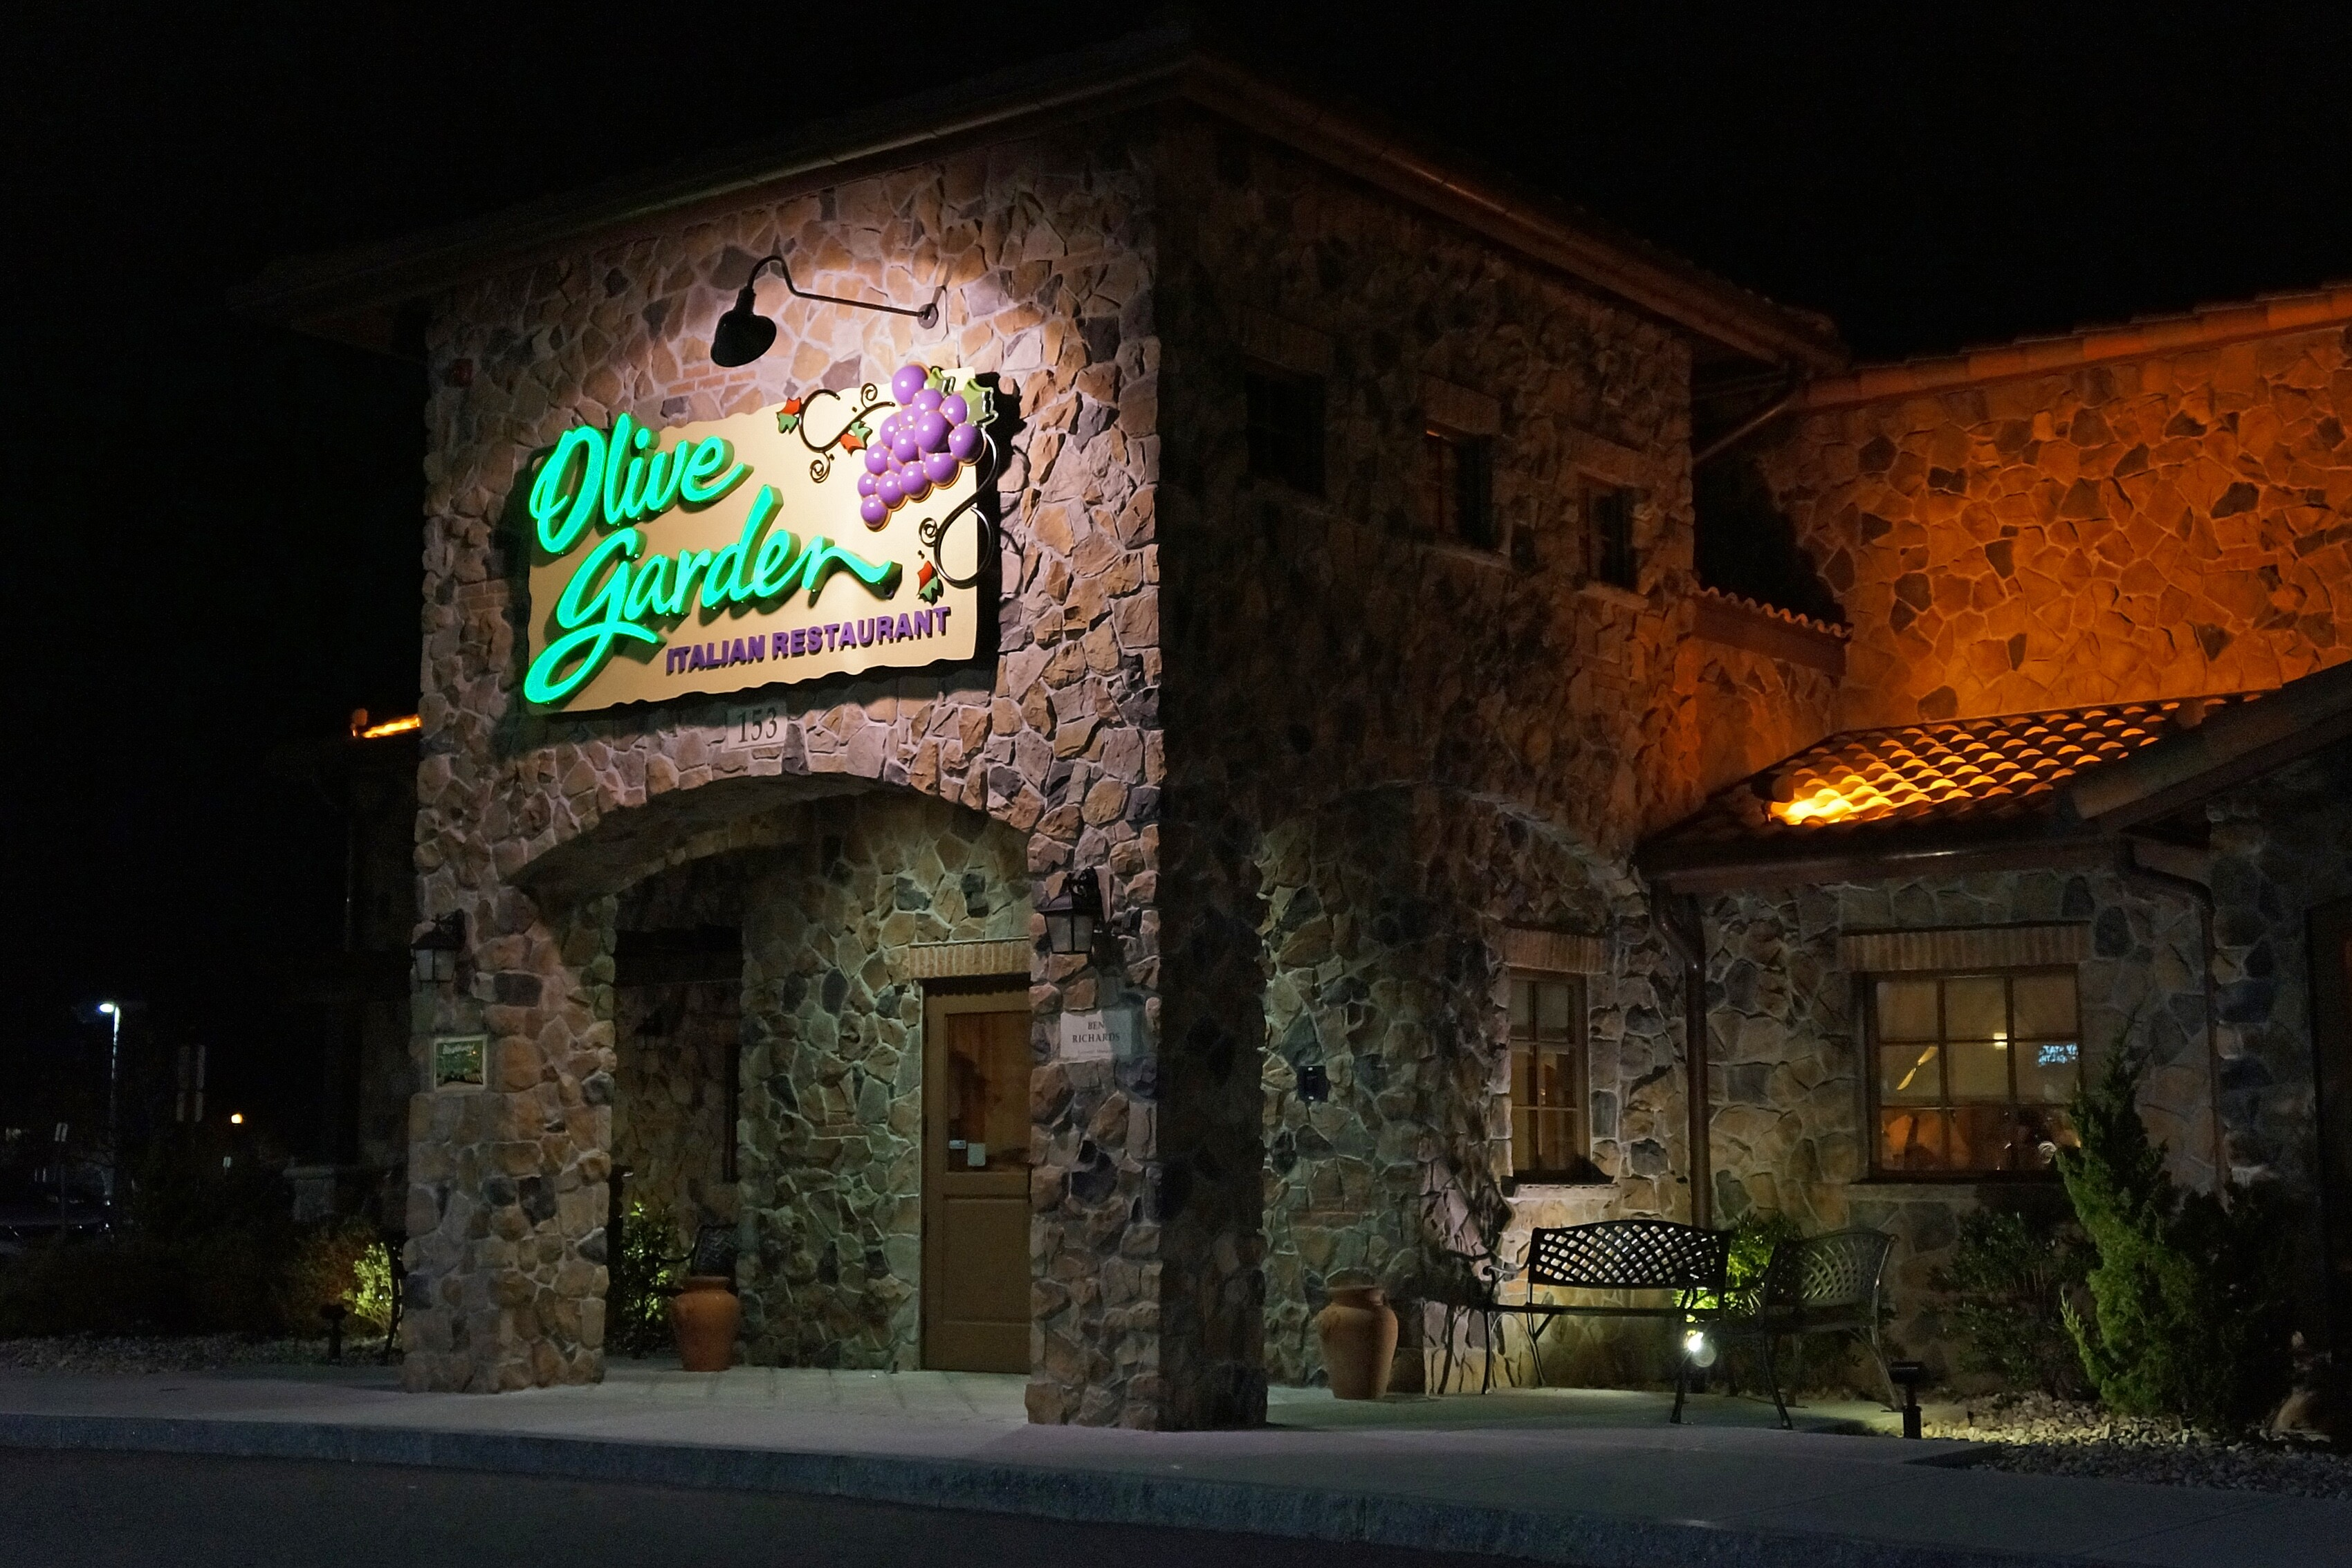 olive garden cheap in more ways than one - Olive Garden York Pa